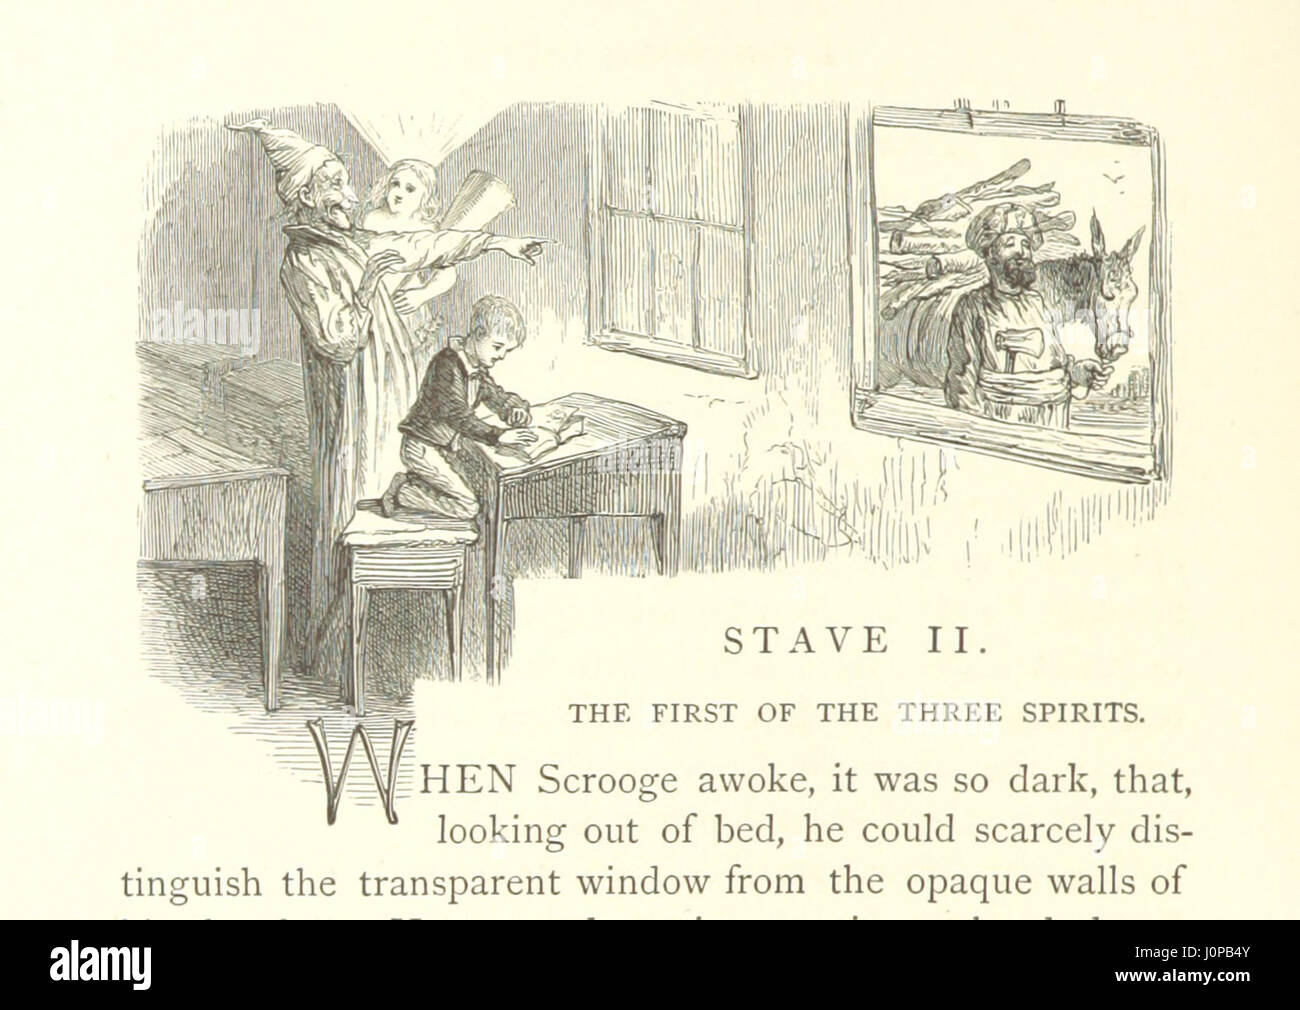 Christmas Carol Scrooge Drawing.A Christmas Carol With Illustrations From Drawings By S